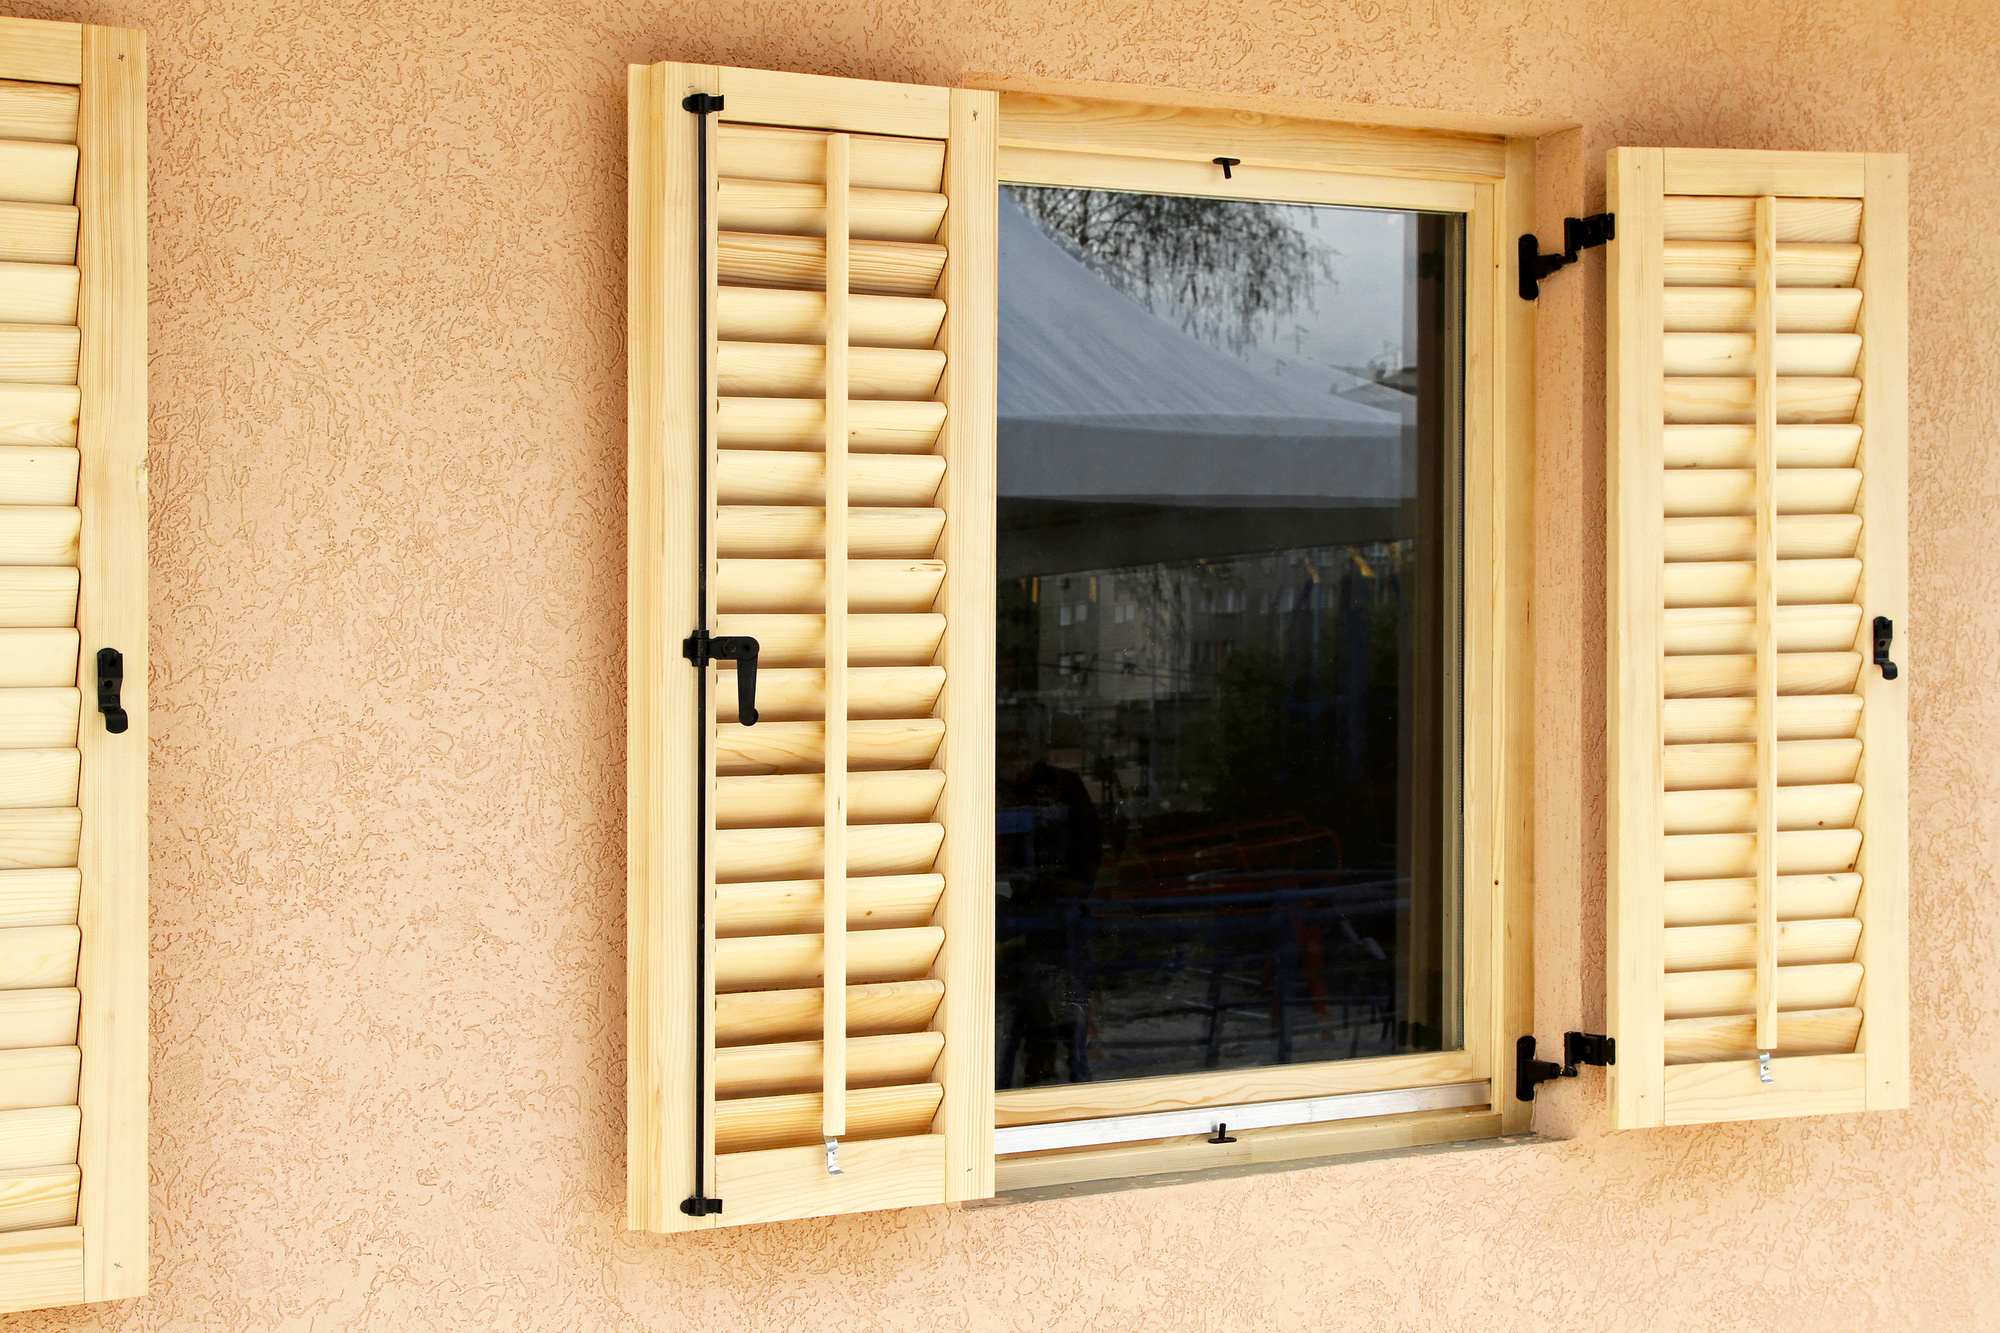 5 Signs Your Window Shutters Need an Upgrade